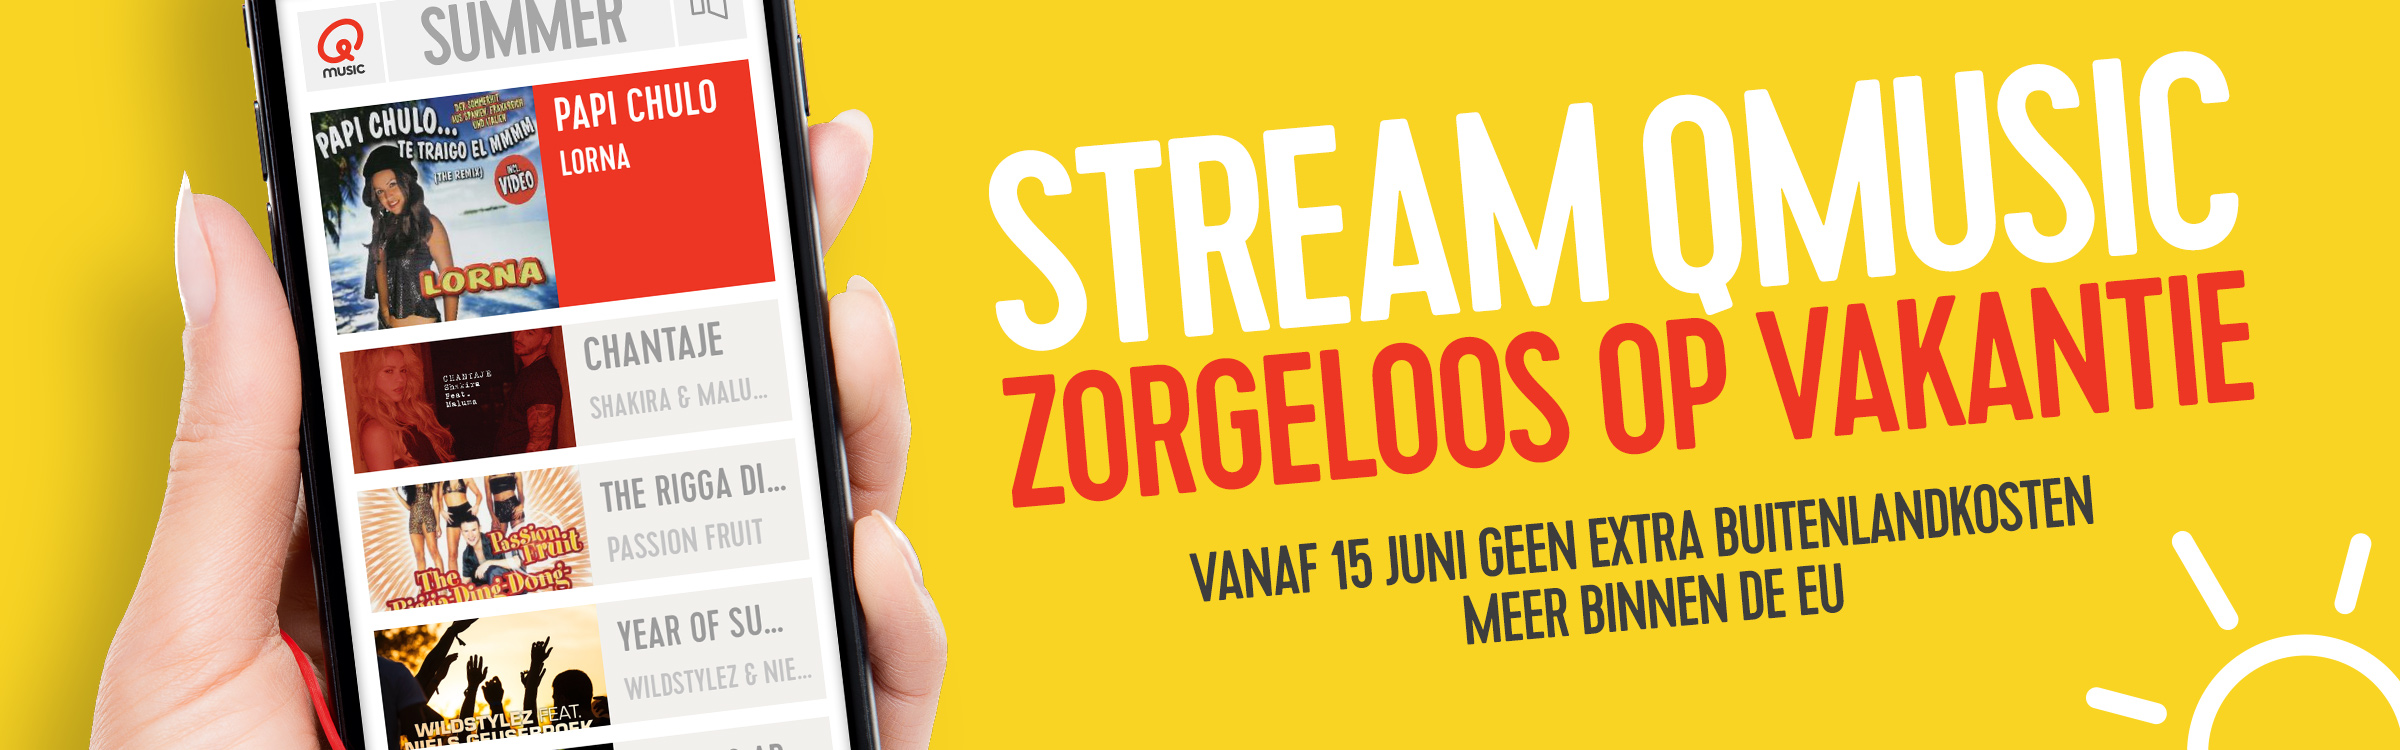 Qmusic actionheader zomerstreamen